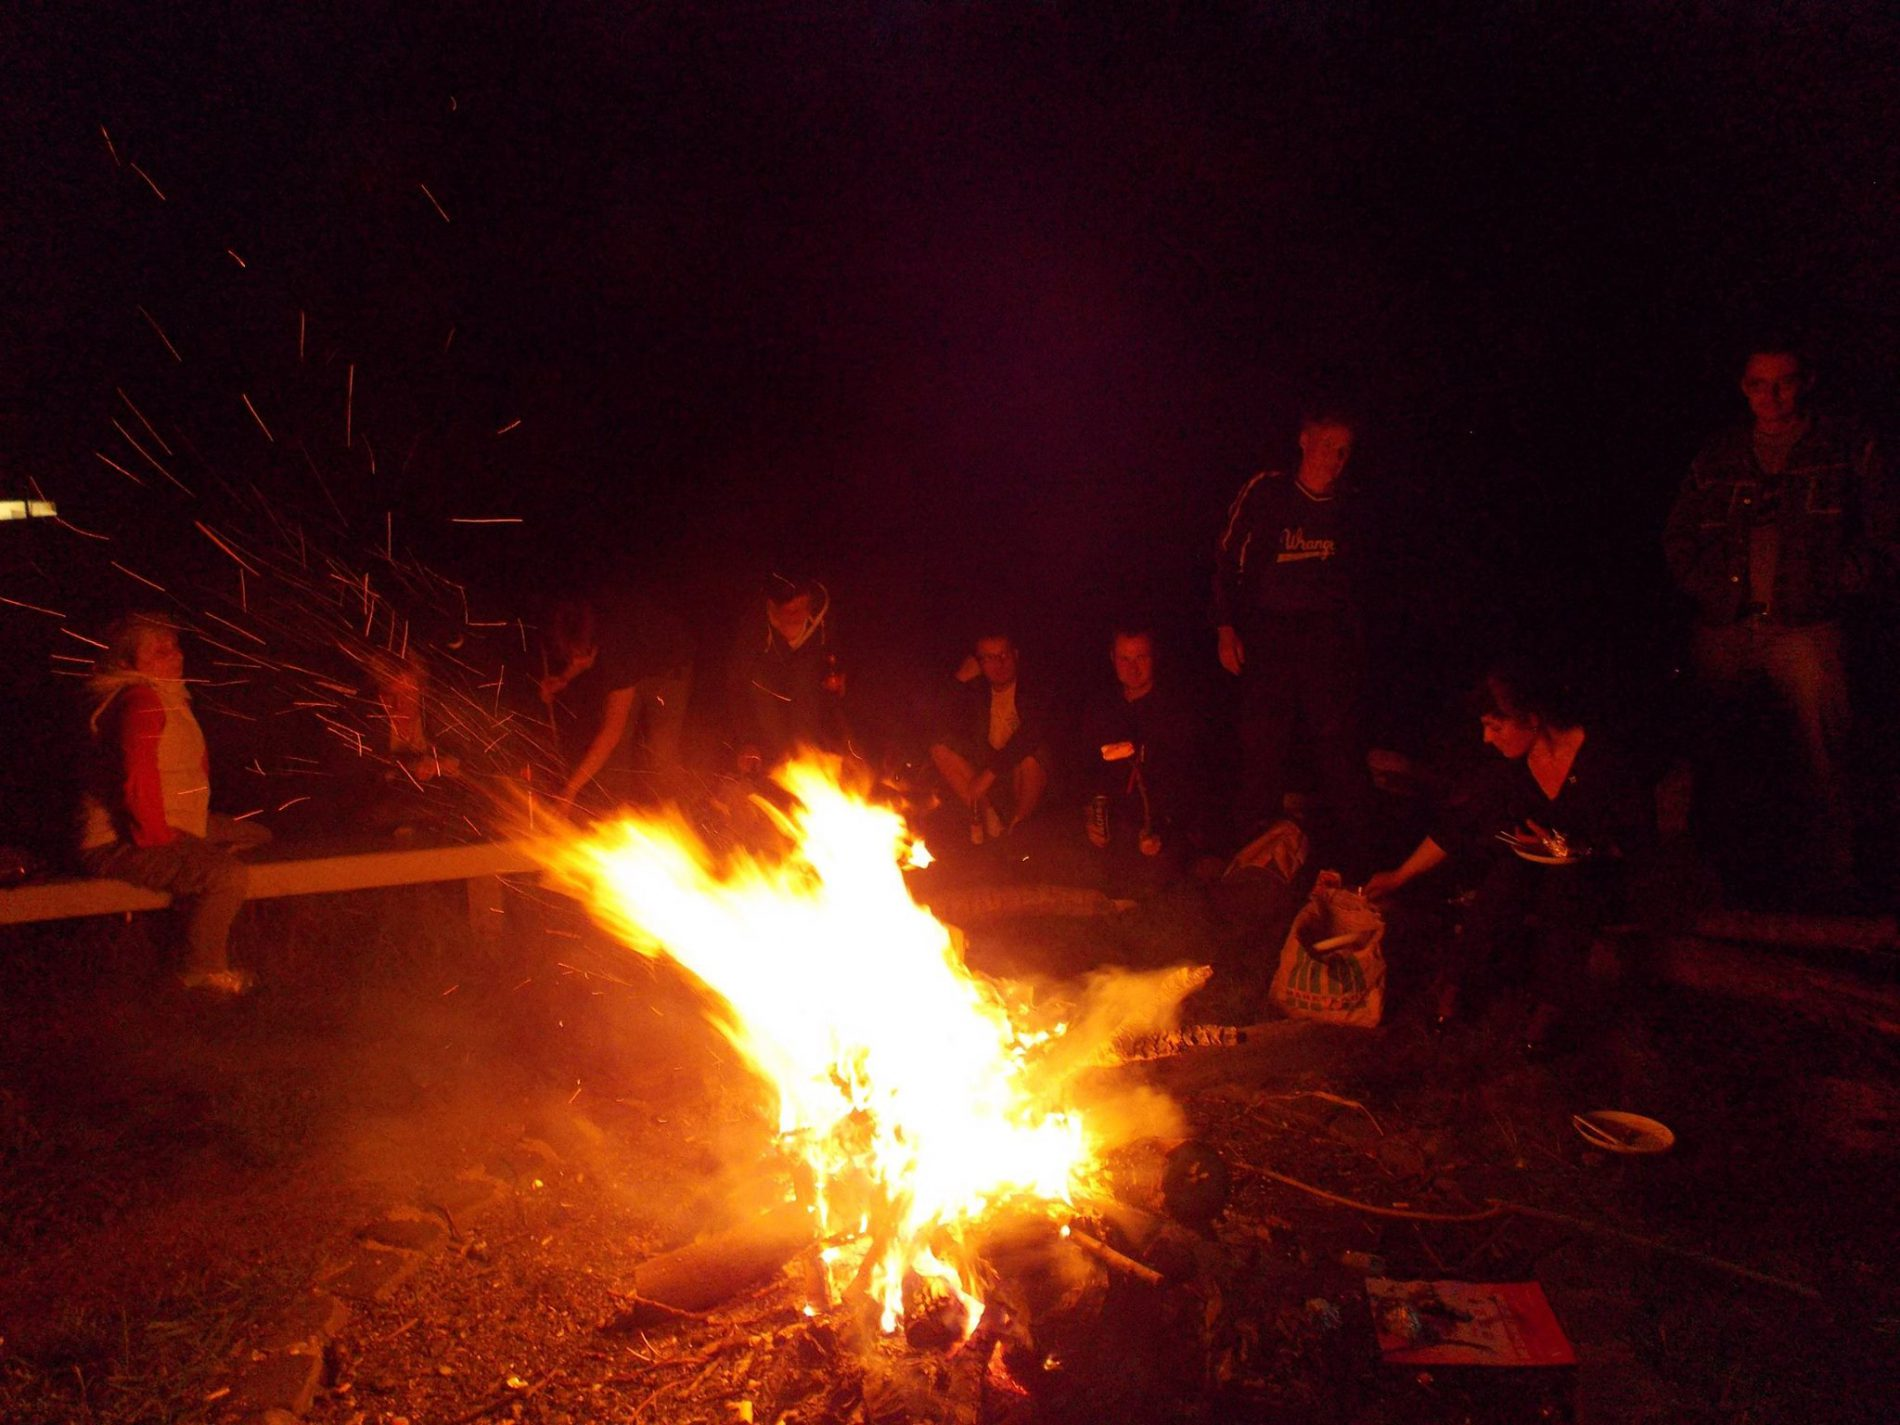 Sommerausklang mit Lagerfeuer am 16.09.2014